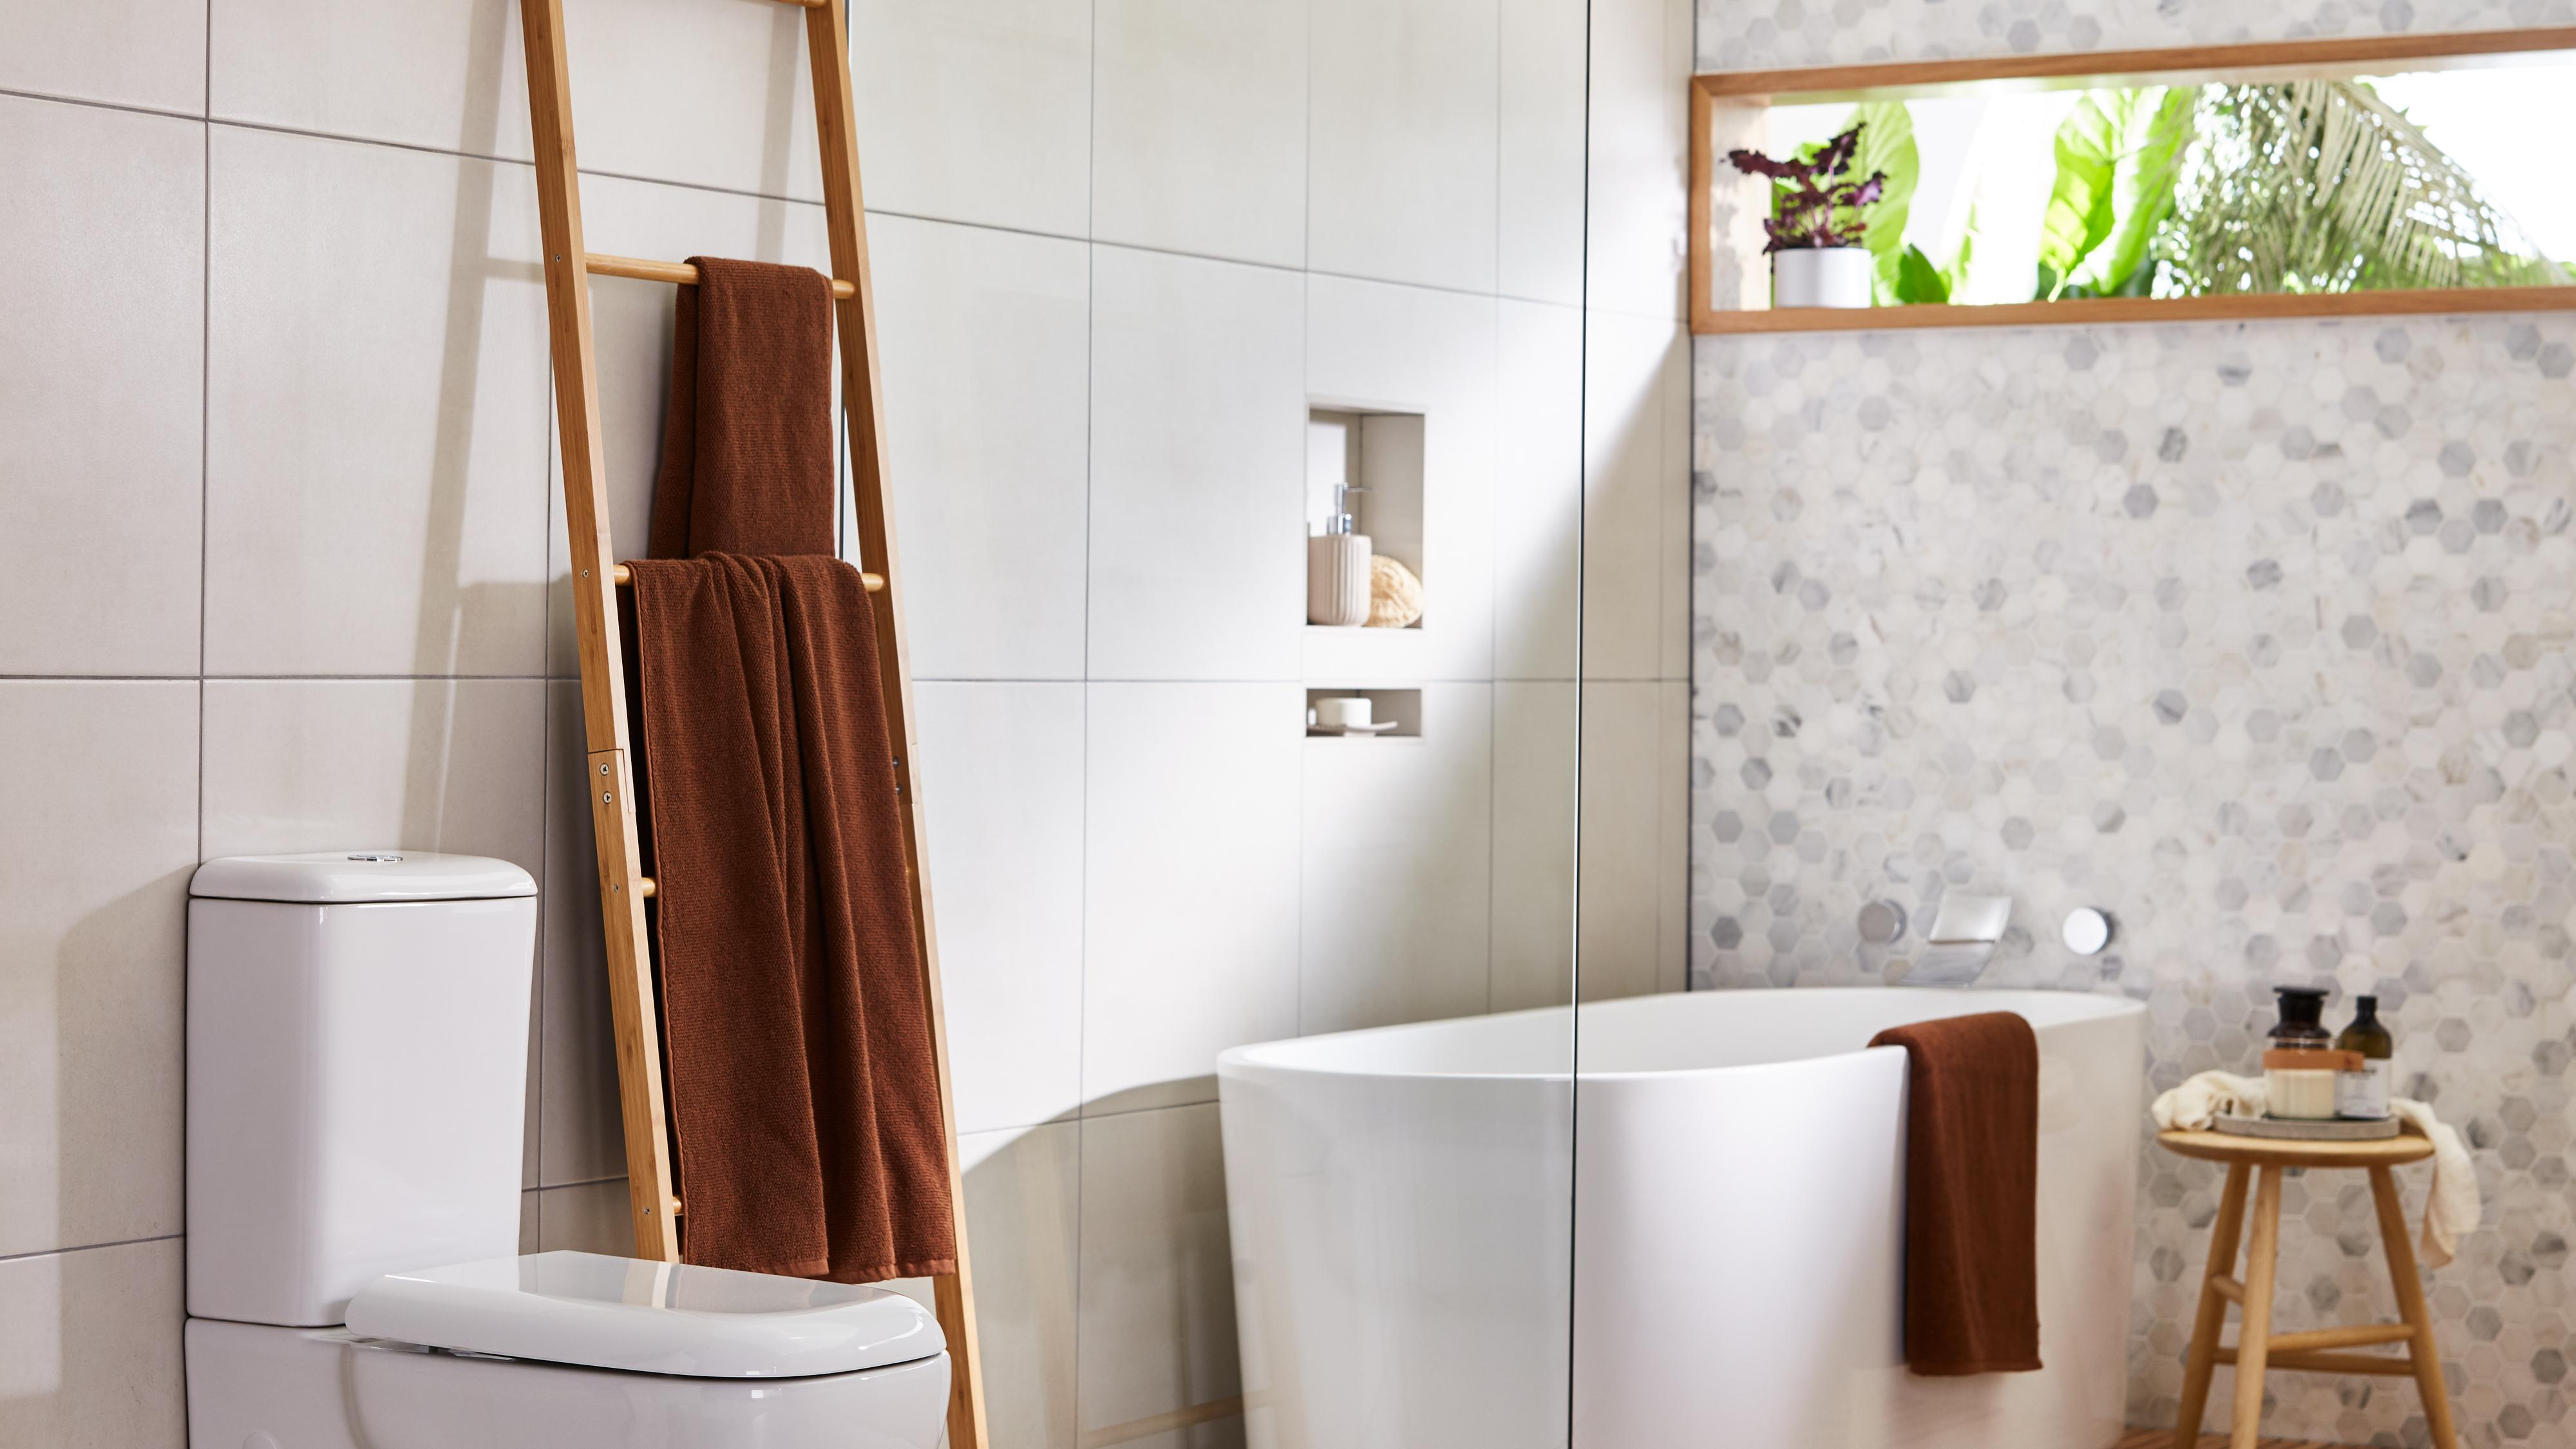 Bathroom featuring large-tiled walls, bath, toilet and window with green plants outside.